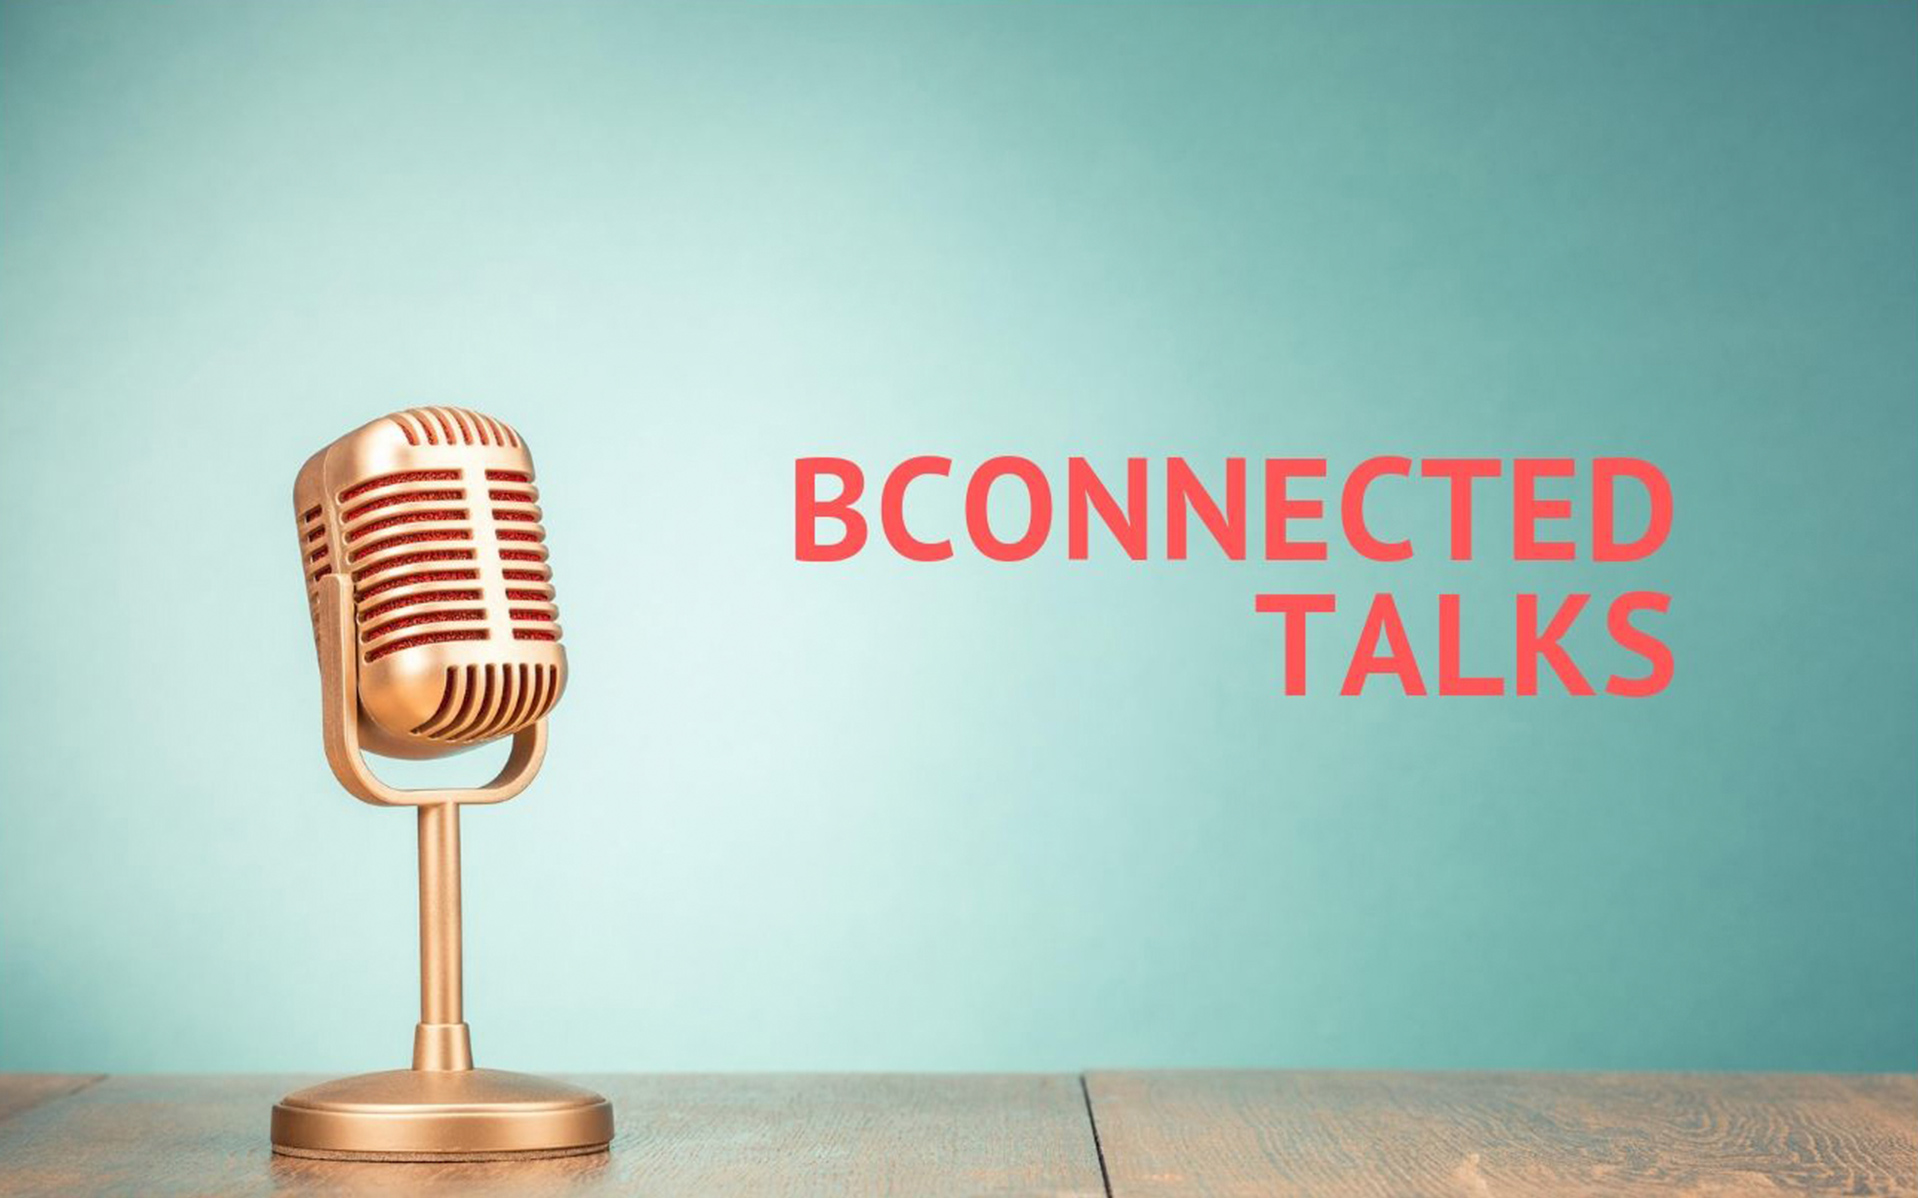 bconnected-blog-THE BCONNECTED TALKS: Verbreitung von Ideen durch inspiriende Speaker